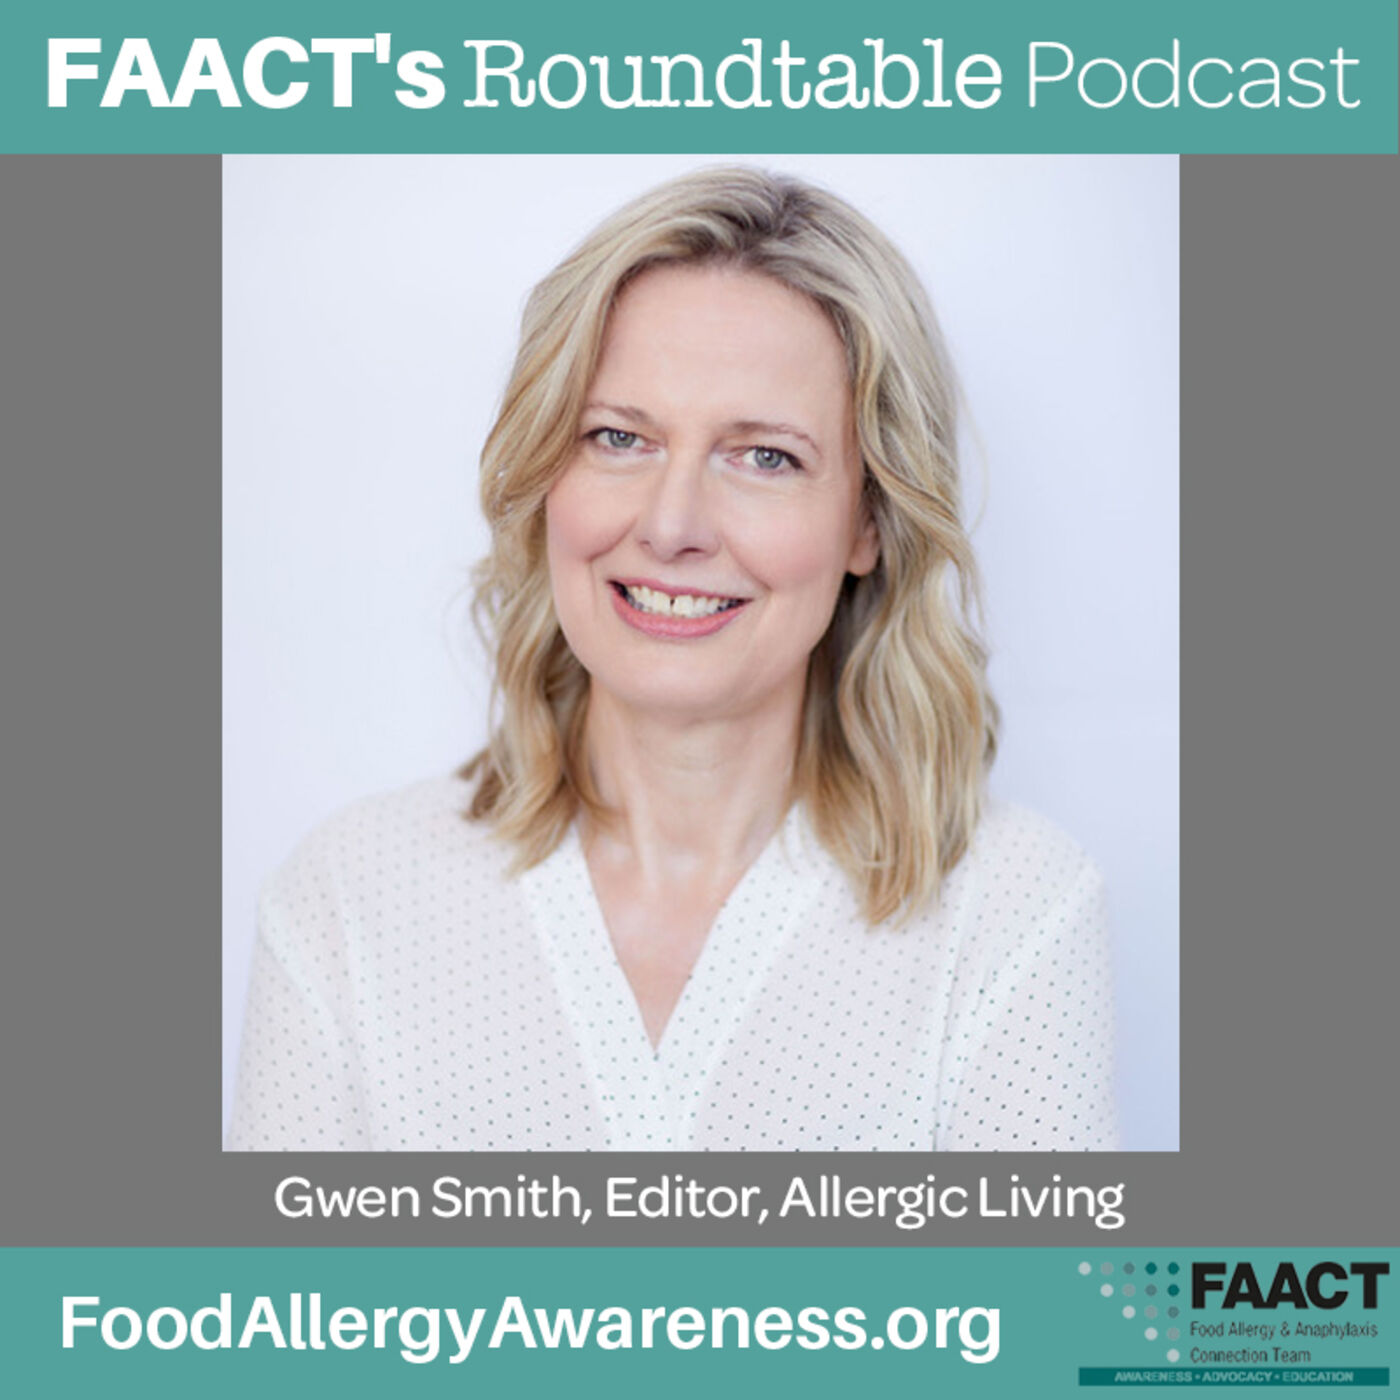 Ep. 59: Behind the Scenes at Allergic Living with Gwen Smith